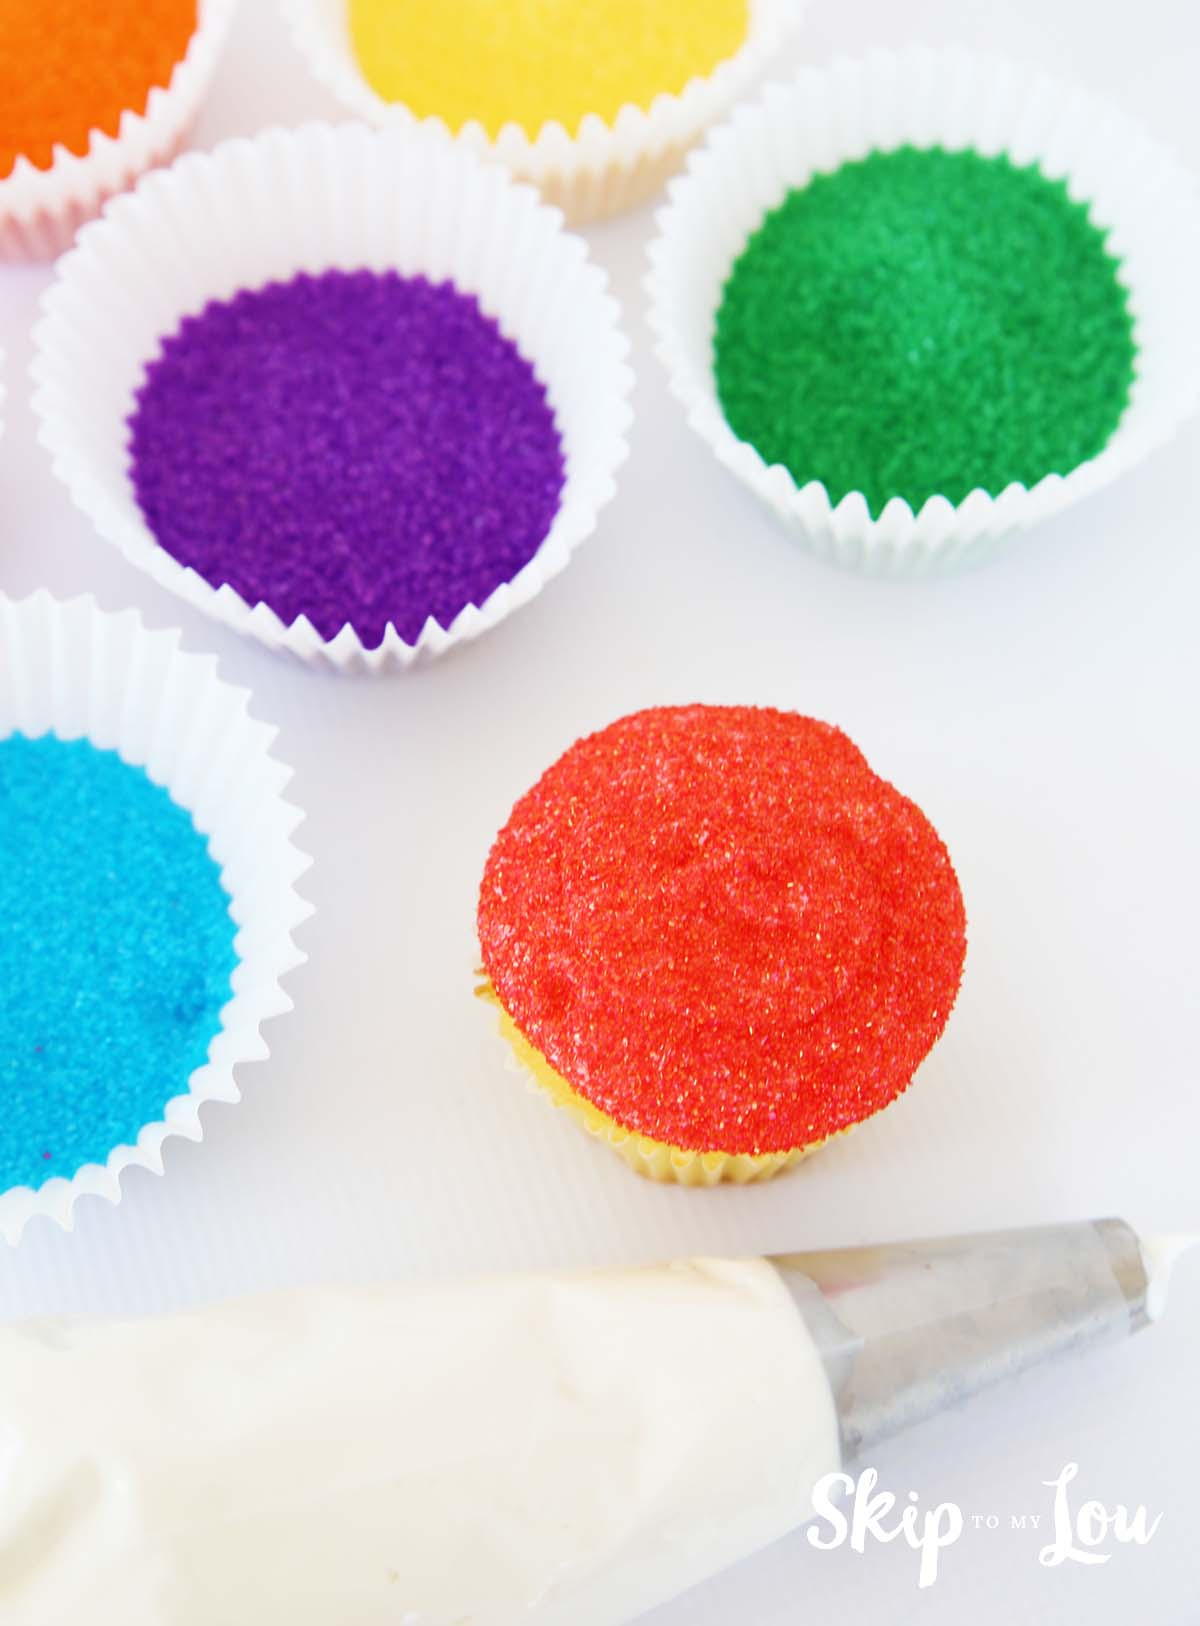 cupcake dipped in red sanding sugar, with a pastry bag with tip filled with white frosting, and jumbo baking cups filled with colored sanding sugar